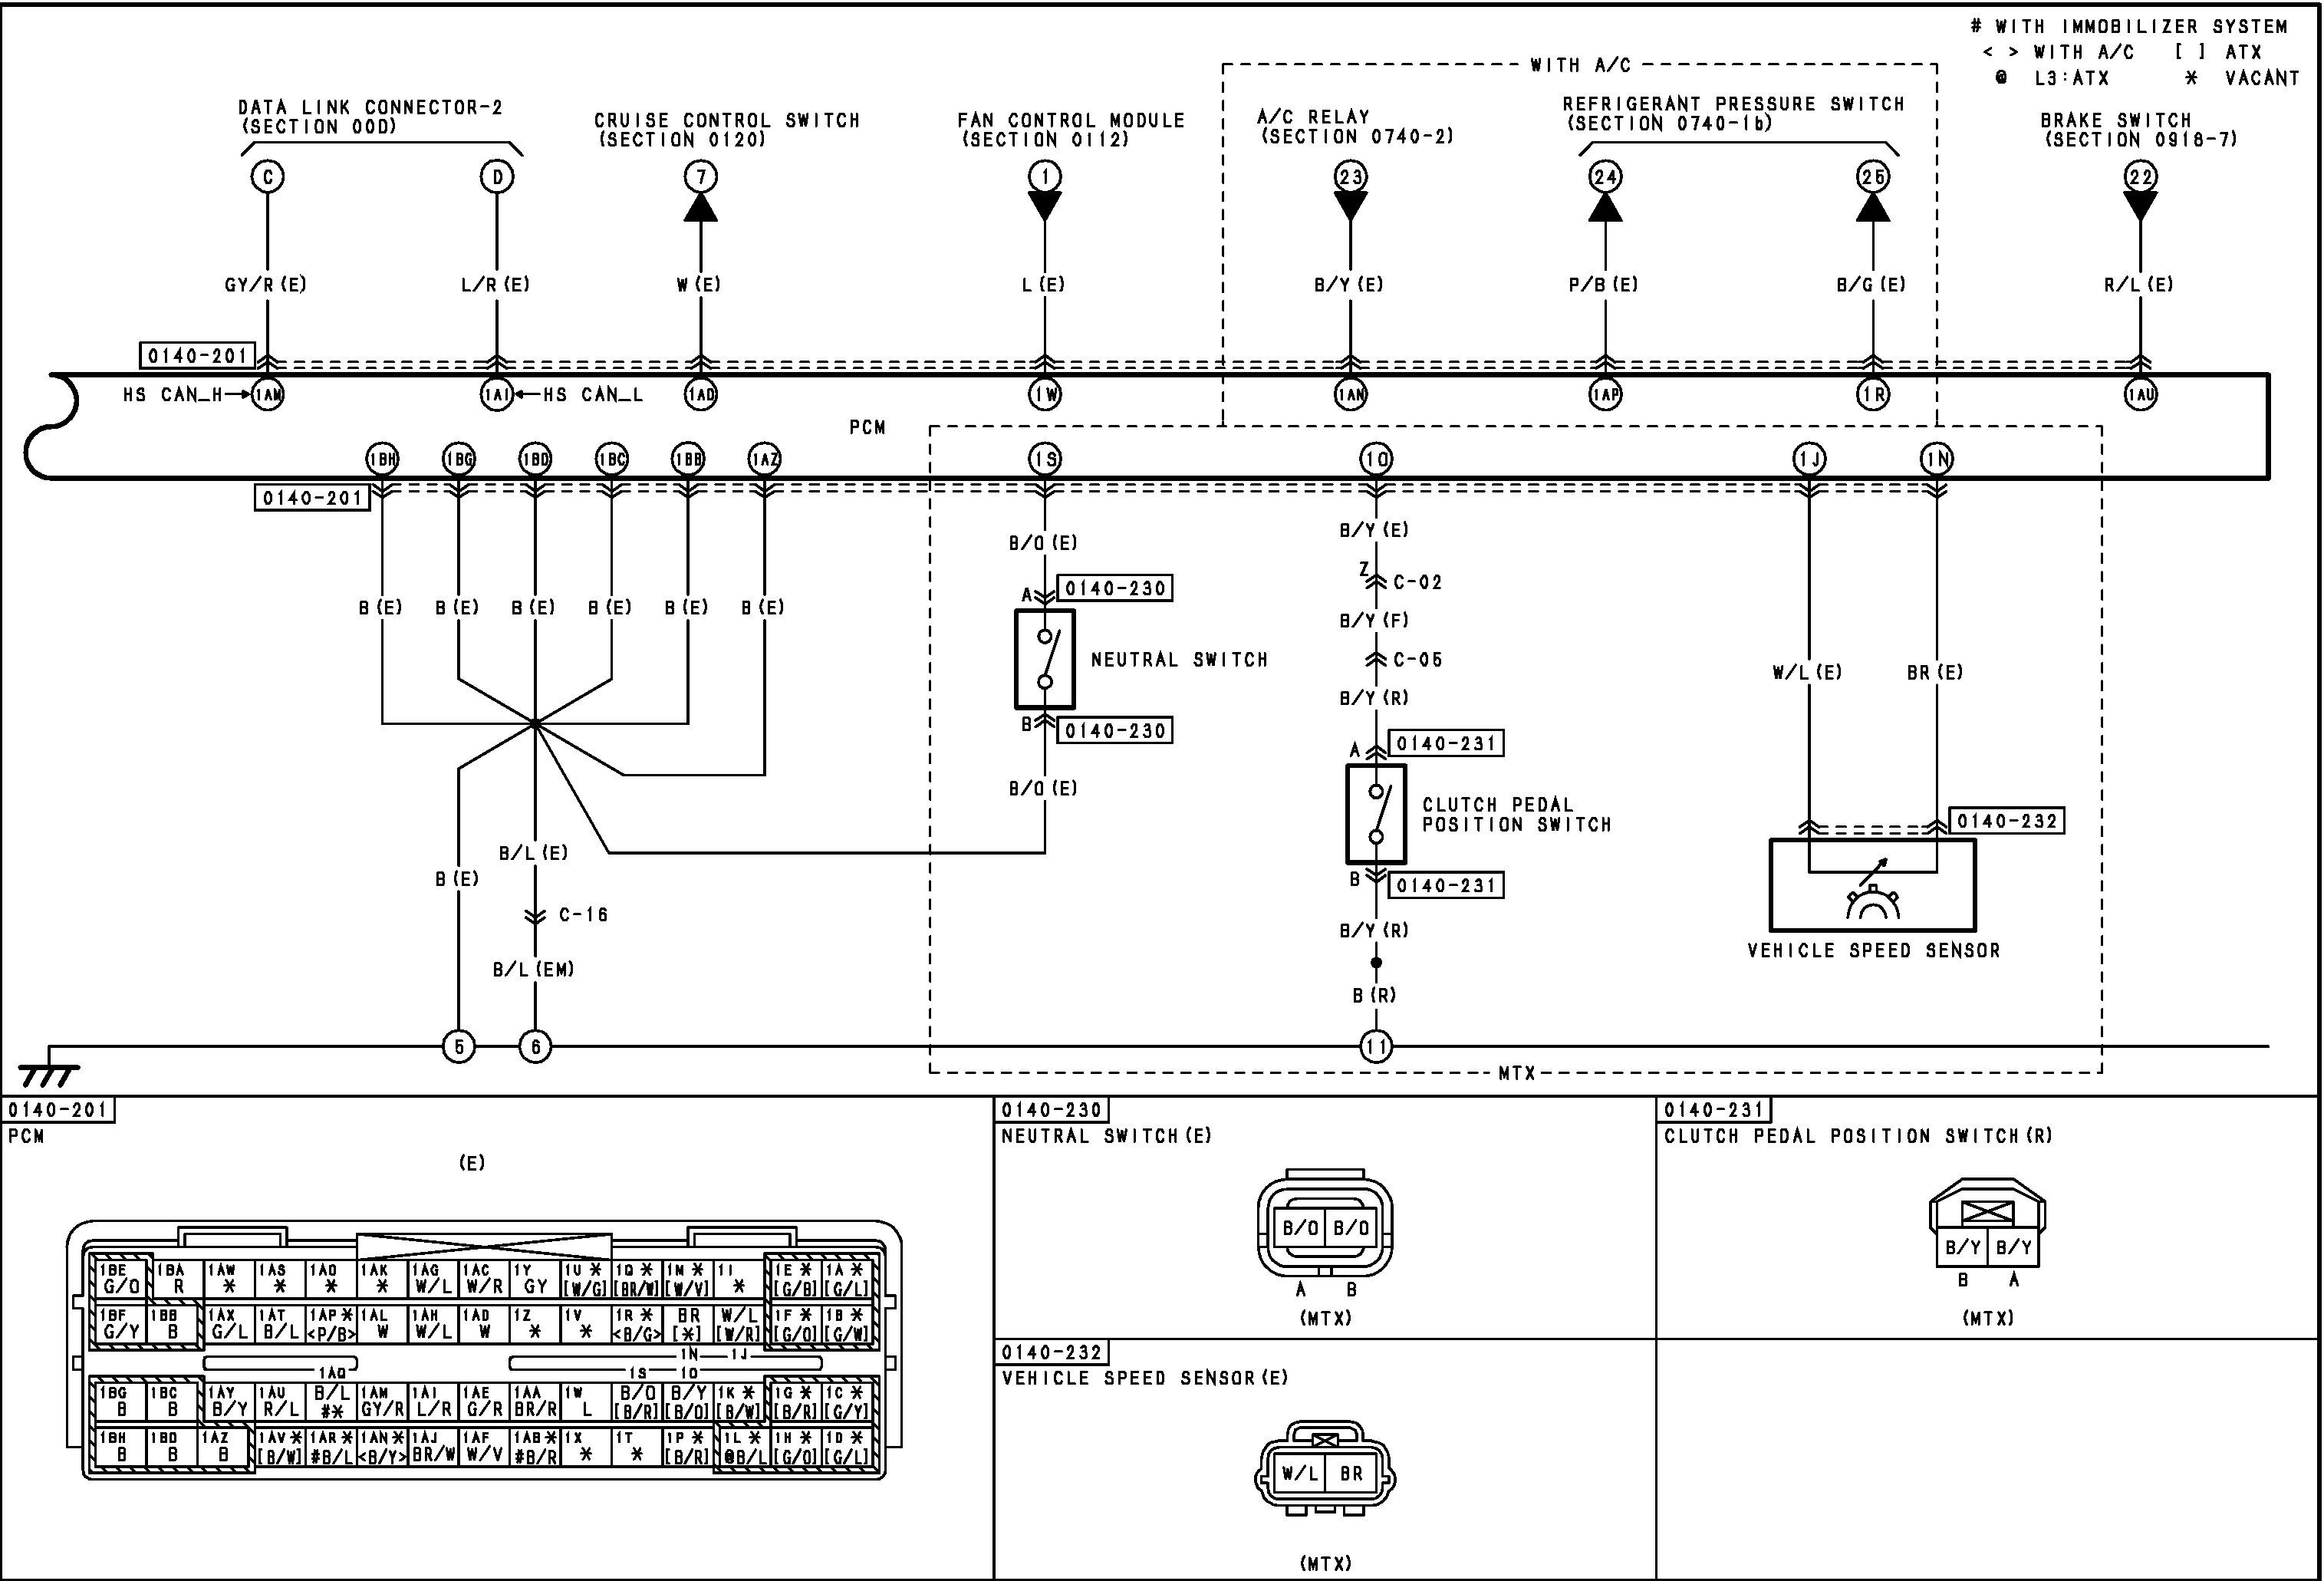 Wiring Diagram 2008 Mazda 3 : Mazda engine wiring diagram free